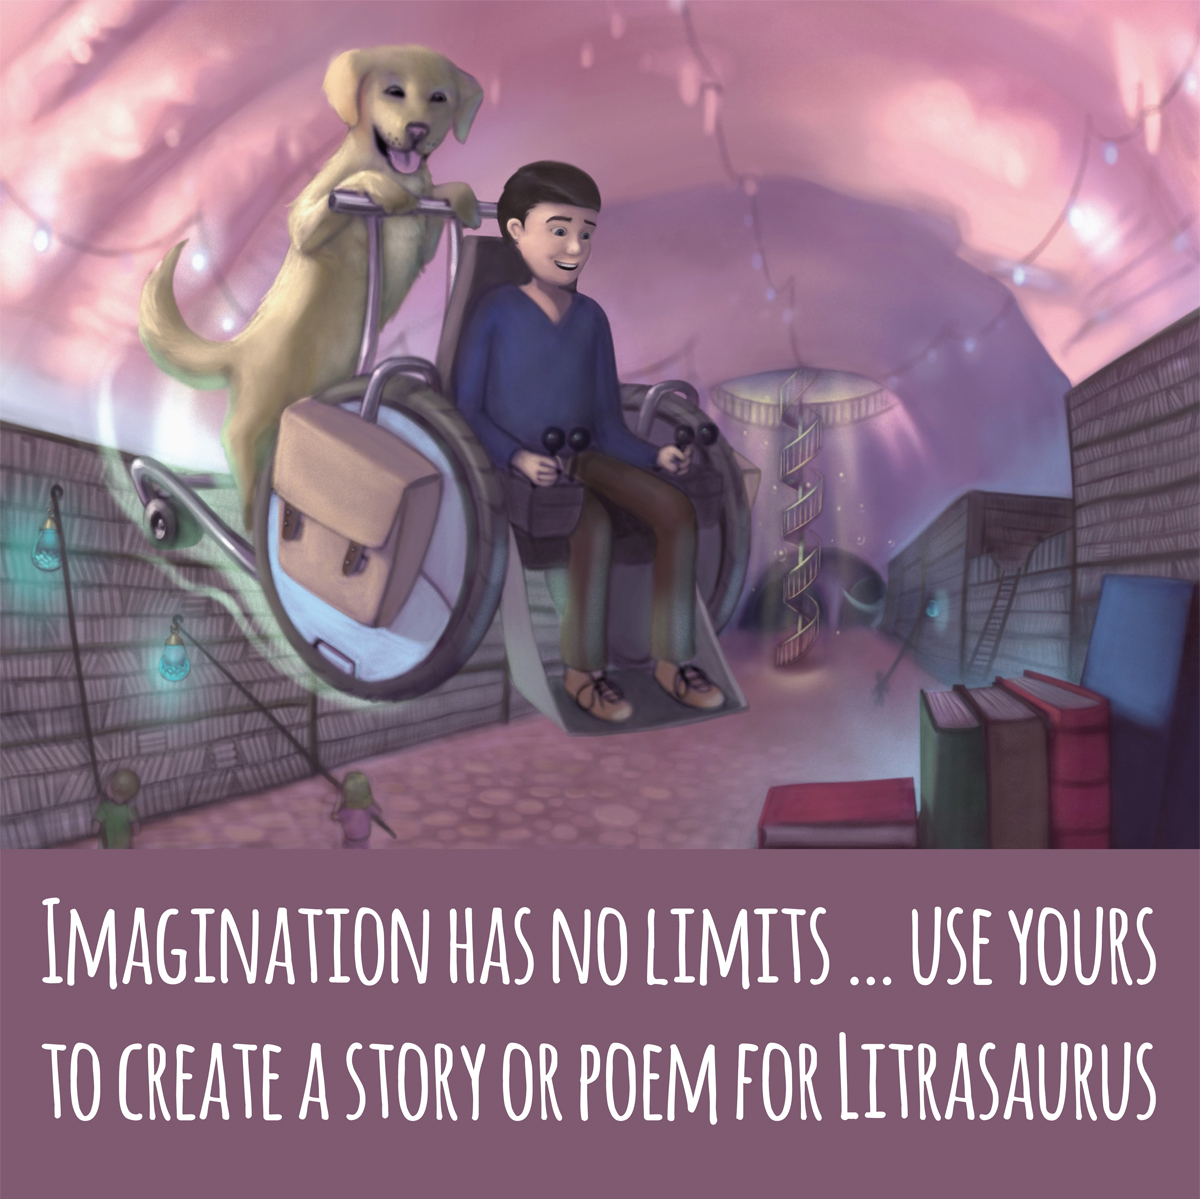 Imagination knows no limits use yours to create a story of poem for Litrasaurus